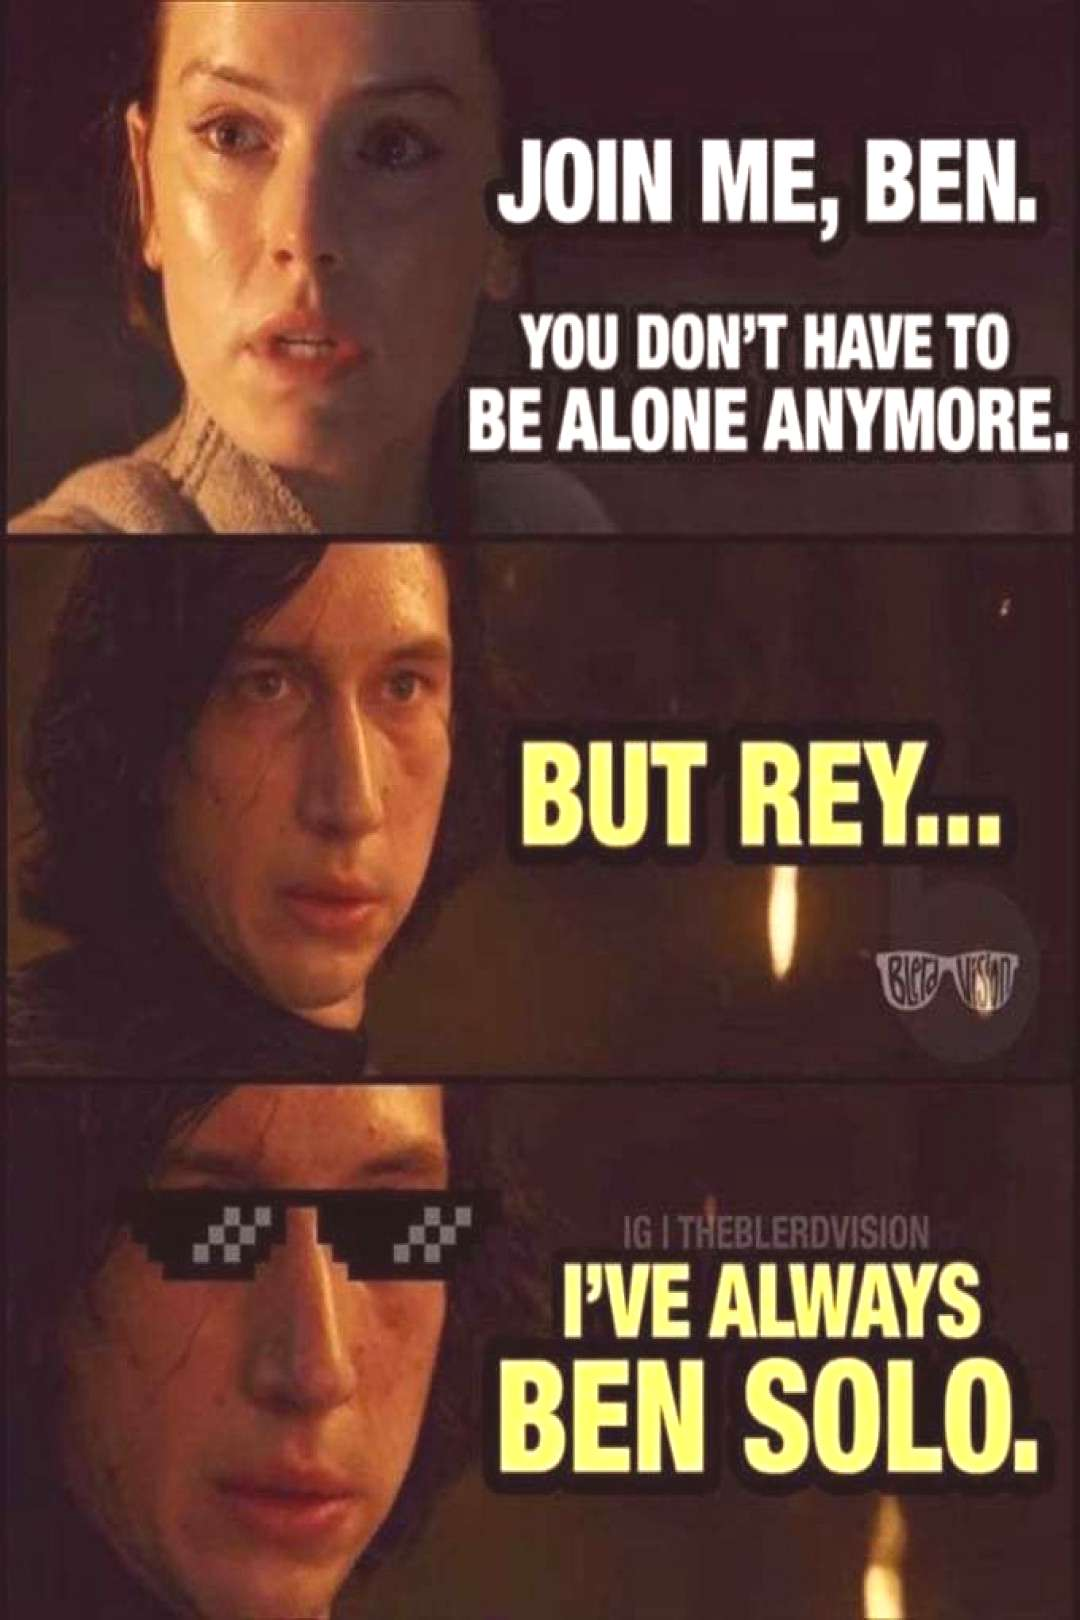 SOLO - Star Wars Meme  Funny Star Wars Memes – Perfect For May the Fourth Day / Star Wars Day